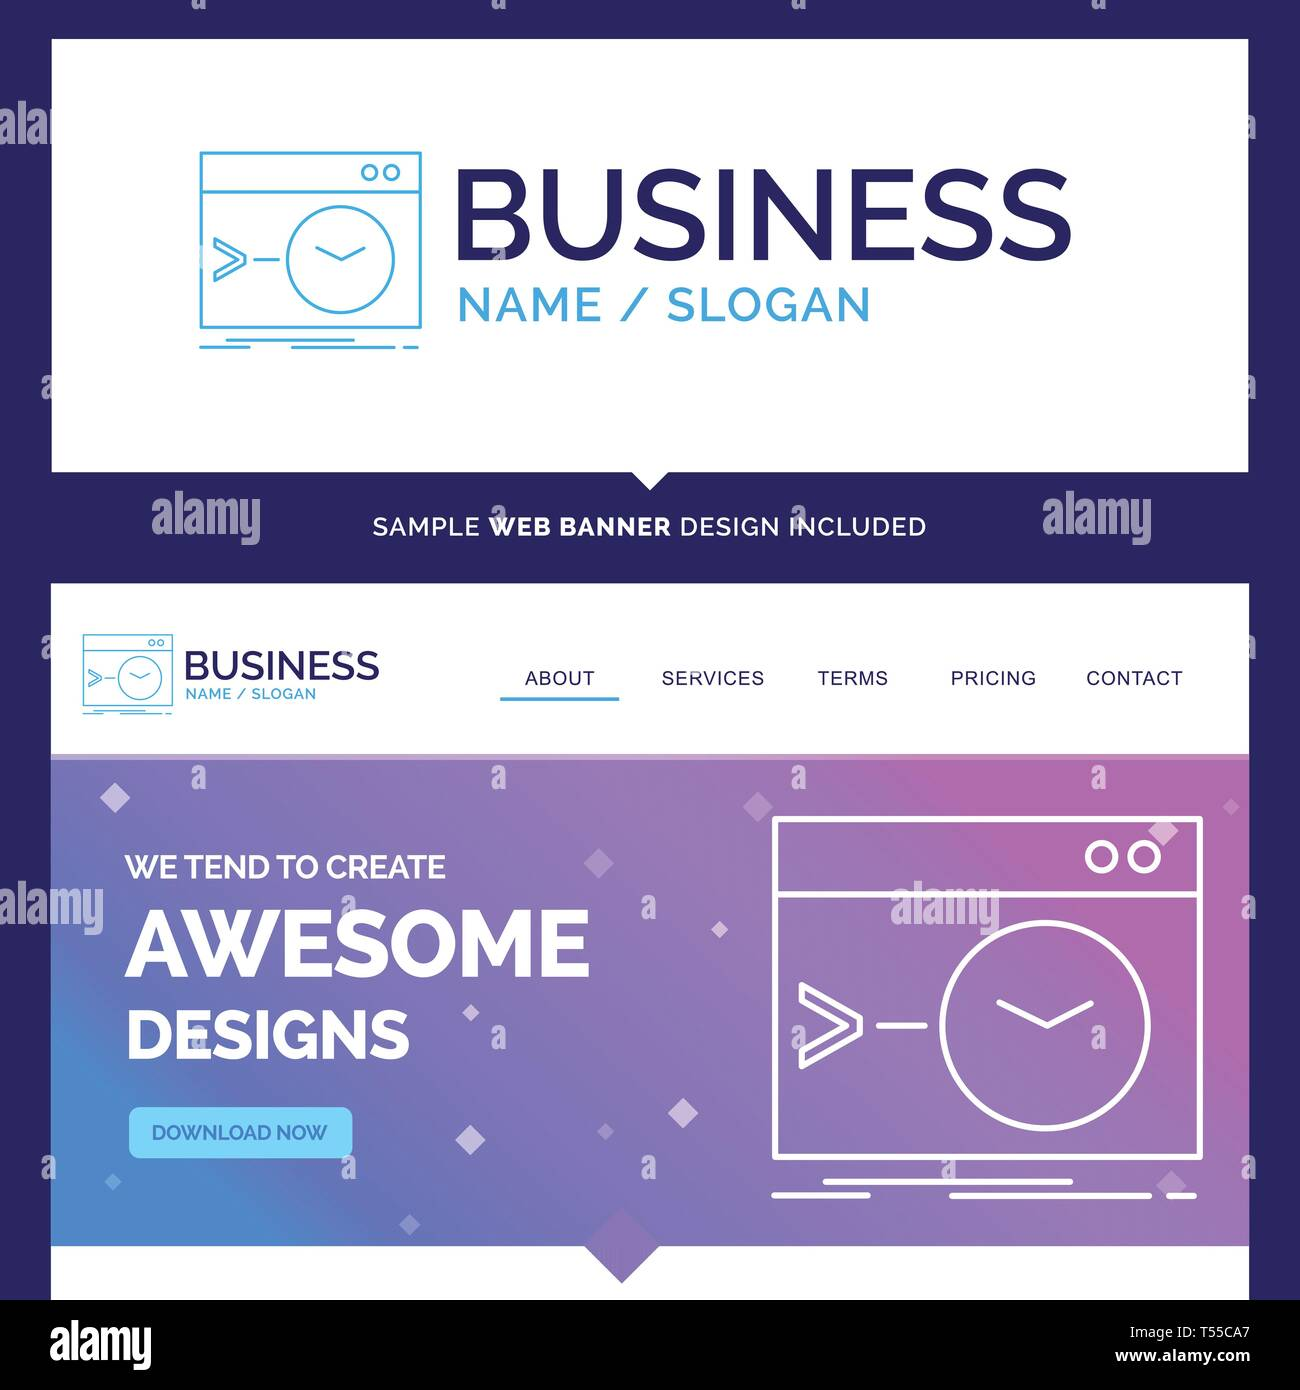 Beautiful Business Concept Brand Name Admin, command, root